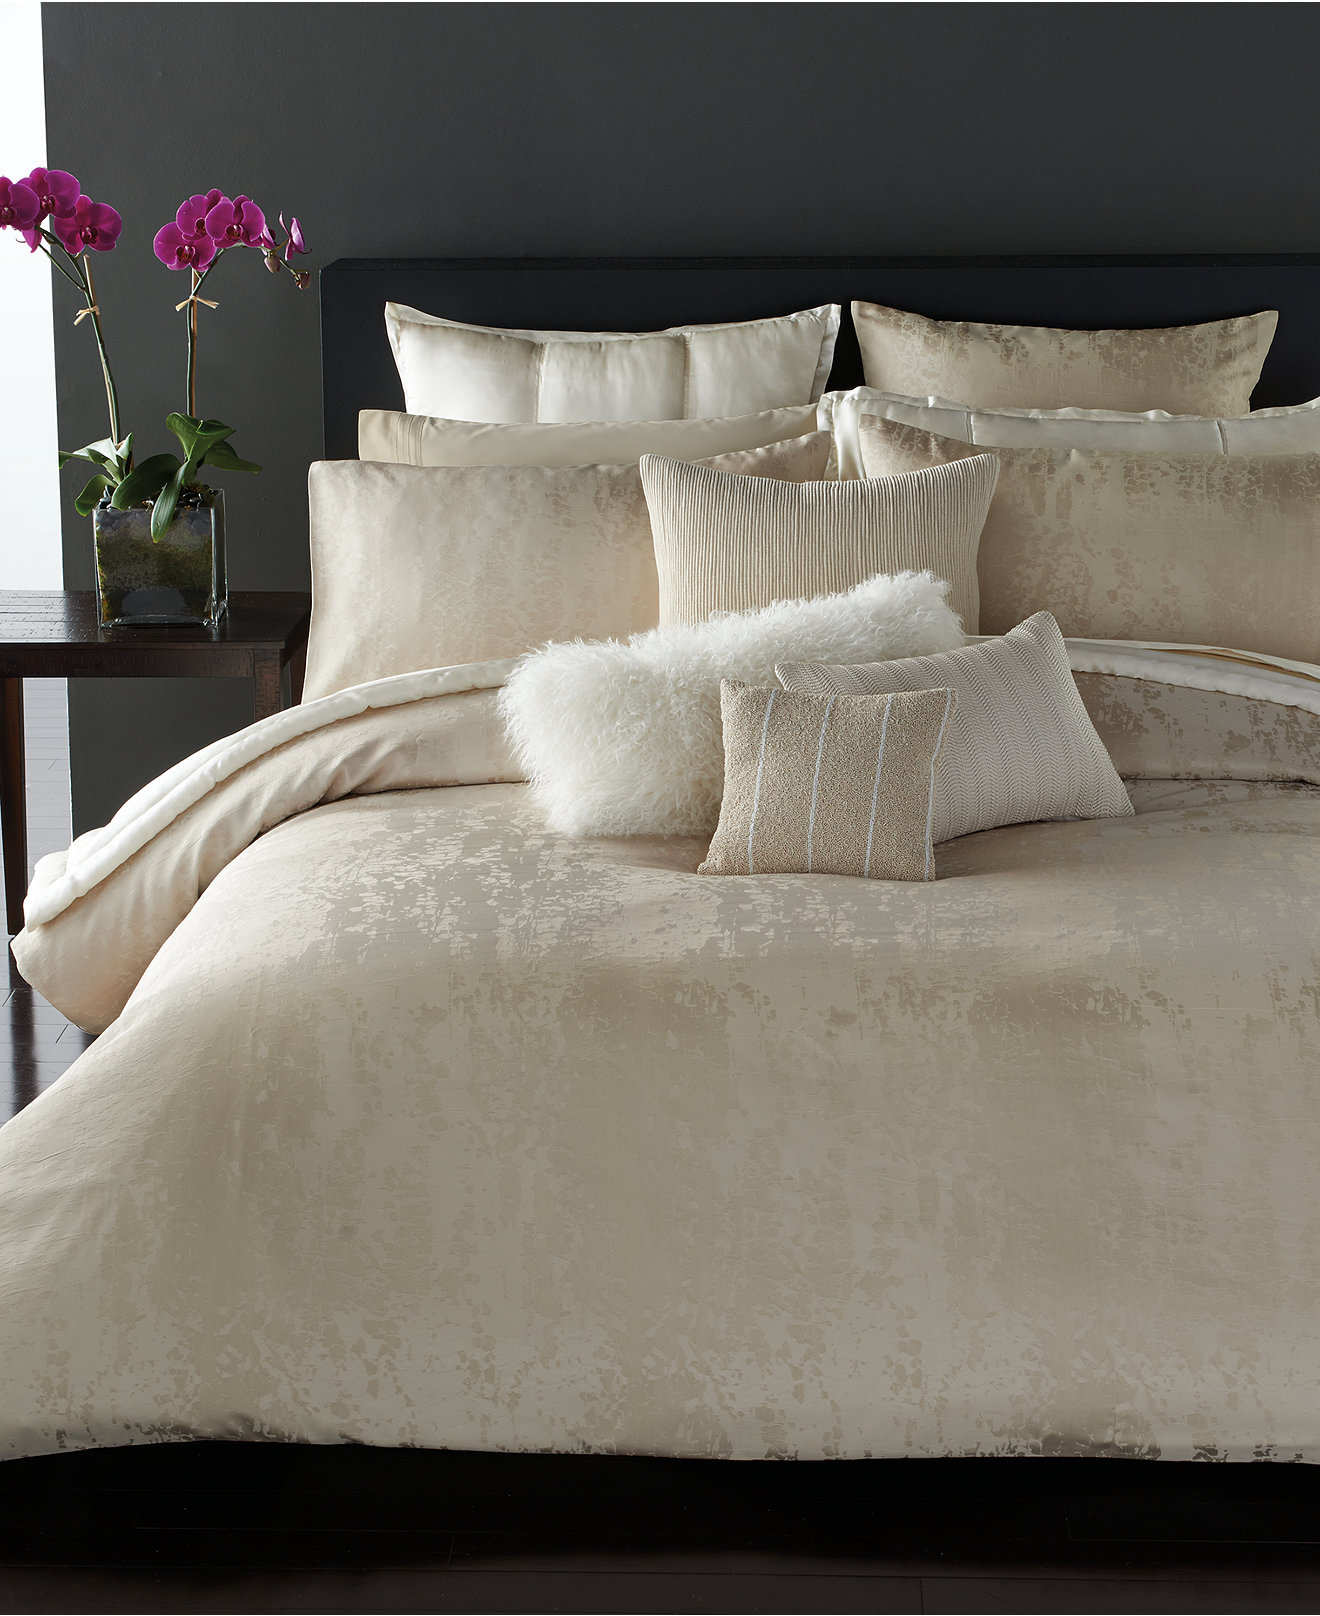 Alluring donna karan bedding with Cushion and pillows also beautiful duvet cover and sidetable and luxury wall paint color